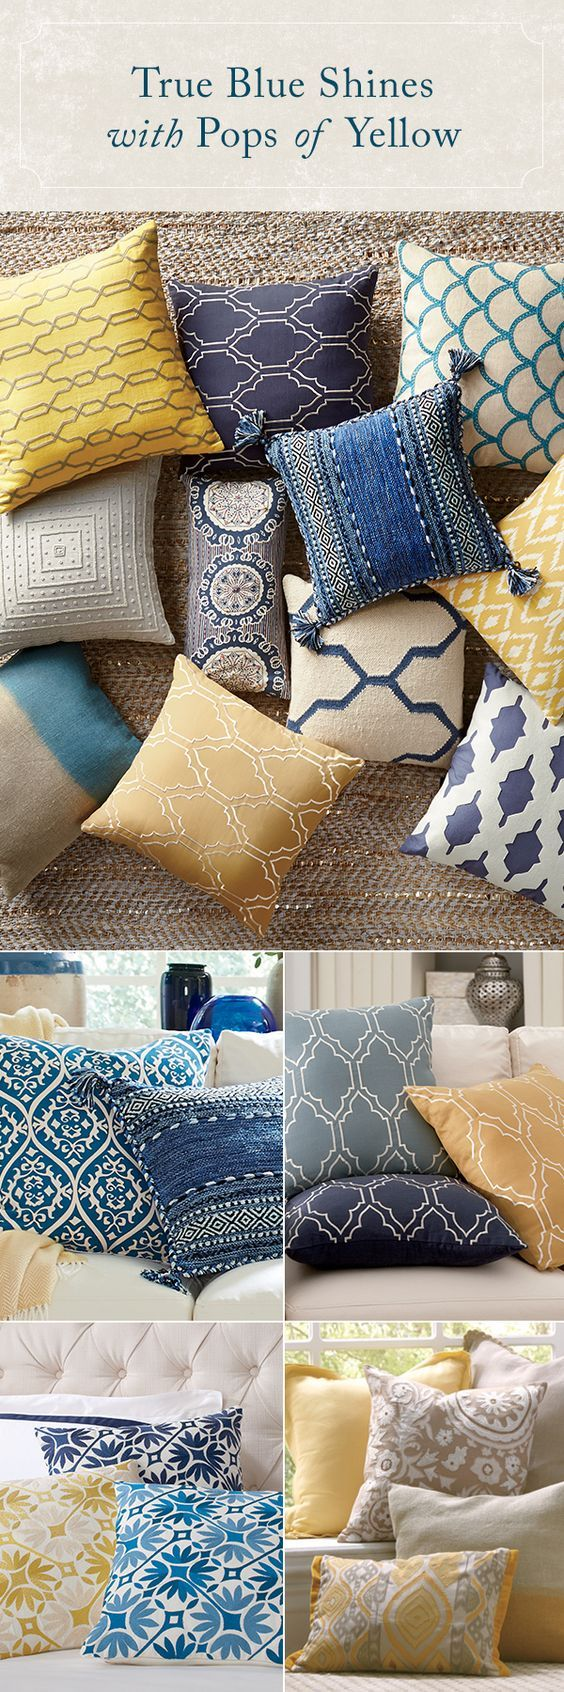 We're pillow lovers, not pillow fighters. There's just something about them that make a bed, sofa, or chair look more finished – not to mention, comfy! With a selection of decorative pillows in all styles, fabrics, and colors, Birch Lane is sure to have that finishing touch you need. Shop now!: